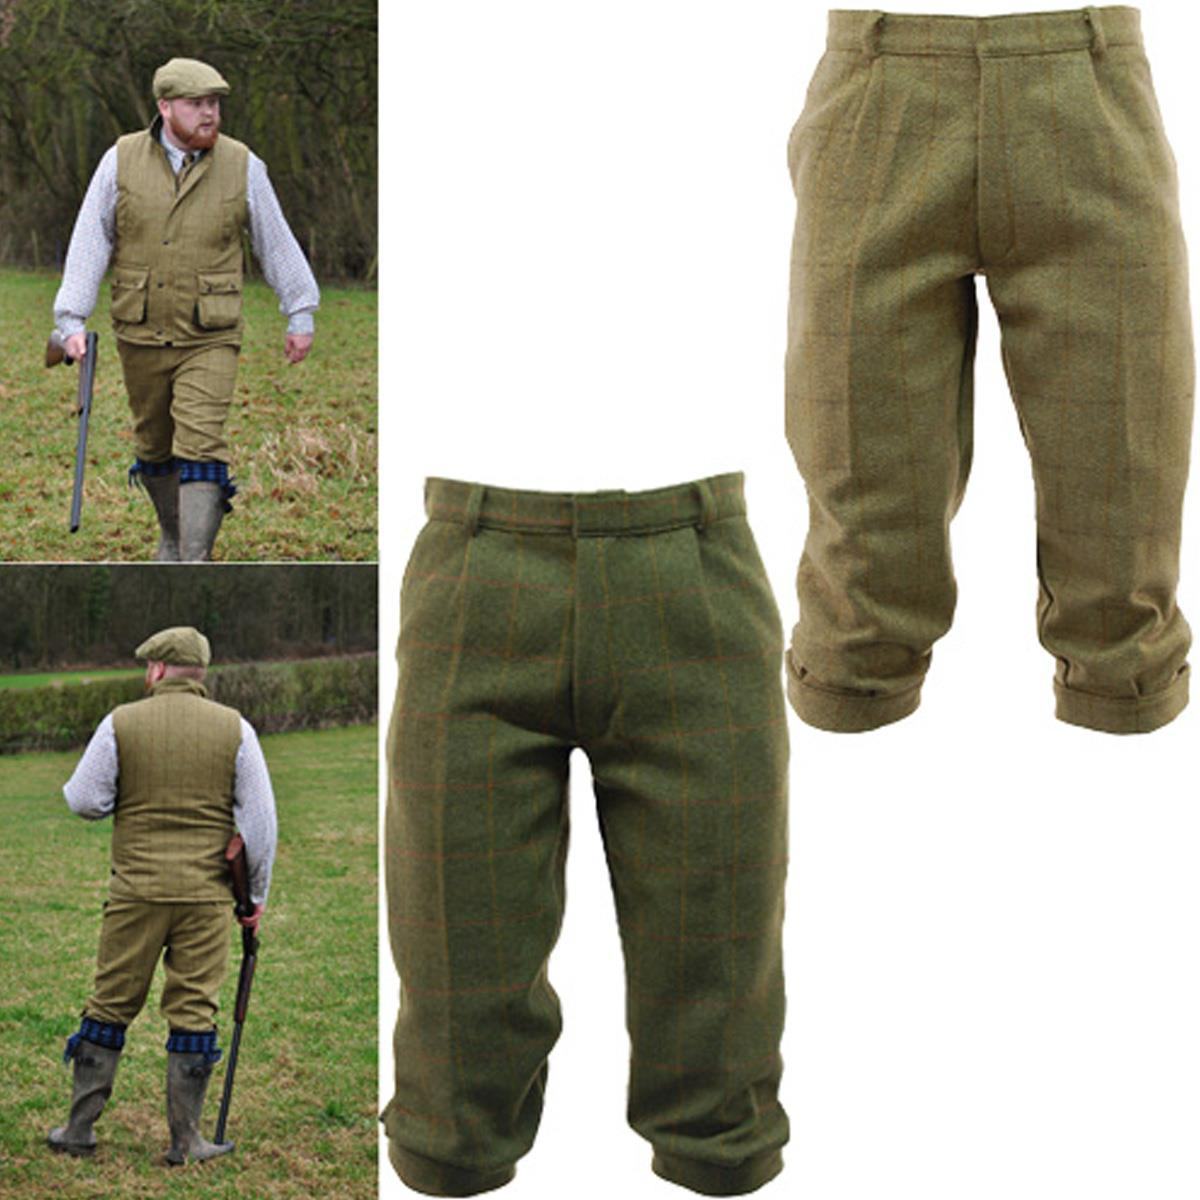 34c32ee7f20dd Mens Game Light Derby Tweed Breeks Trousers Hunting | Shooting Breeches.  Derby Tweed Breeches. Classic cut tweed breeks with two side pockets, Back  pocket ...